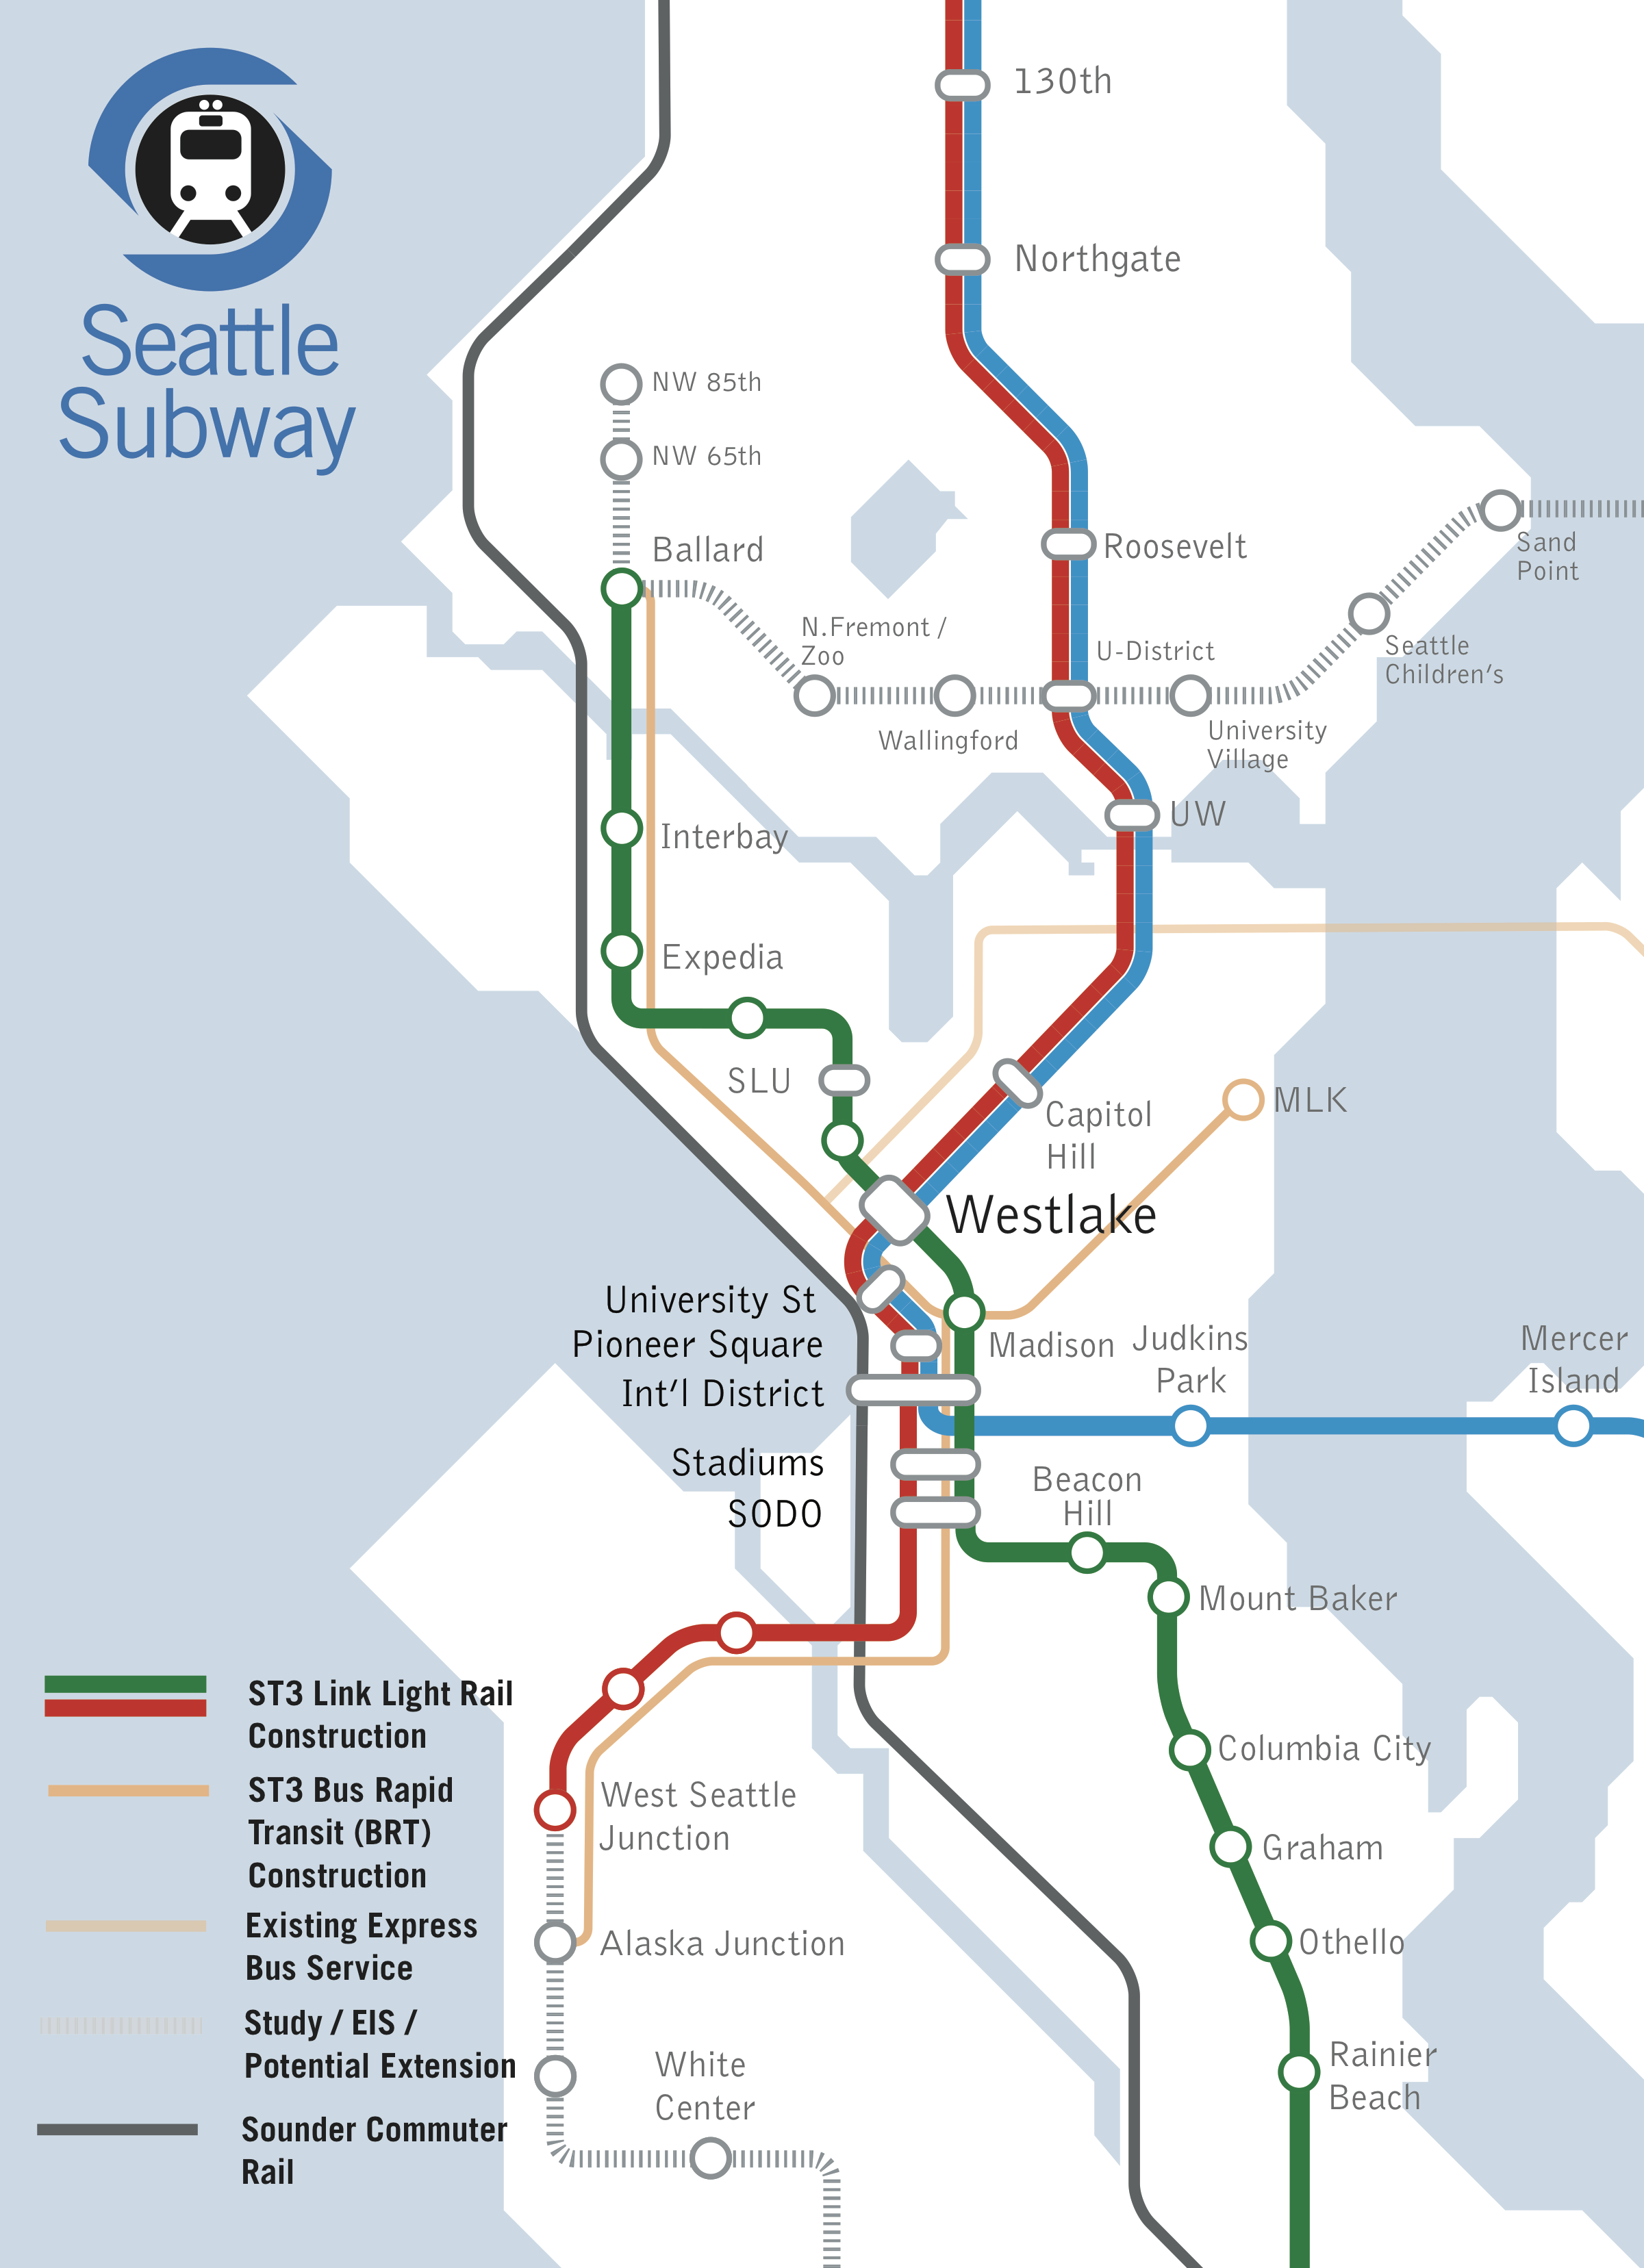 subway expansion plan The de blasio administration called the brooklyn area prime for expansion, but its idea is not new — the line has been debated, shelved and debated again.